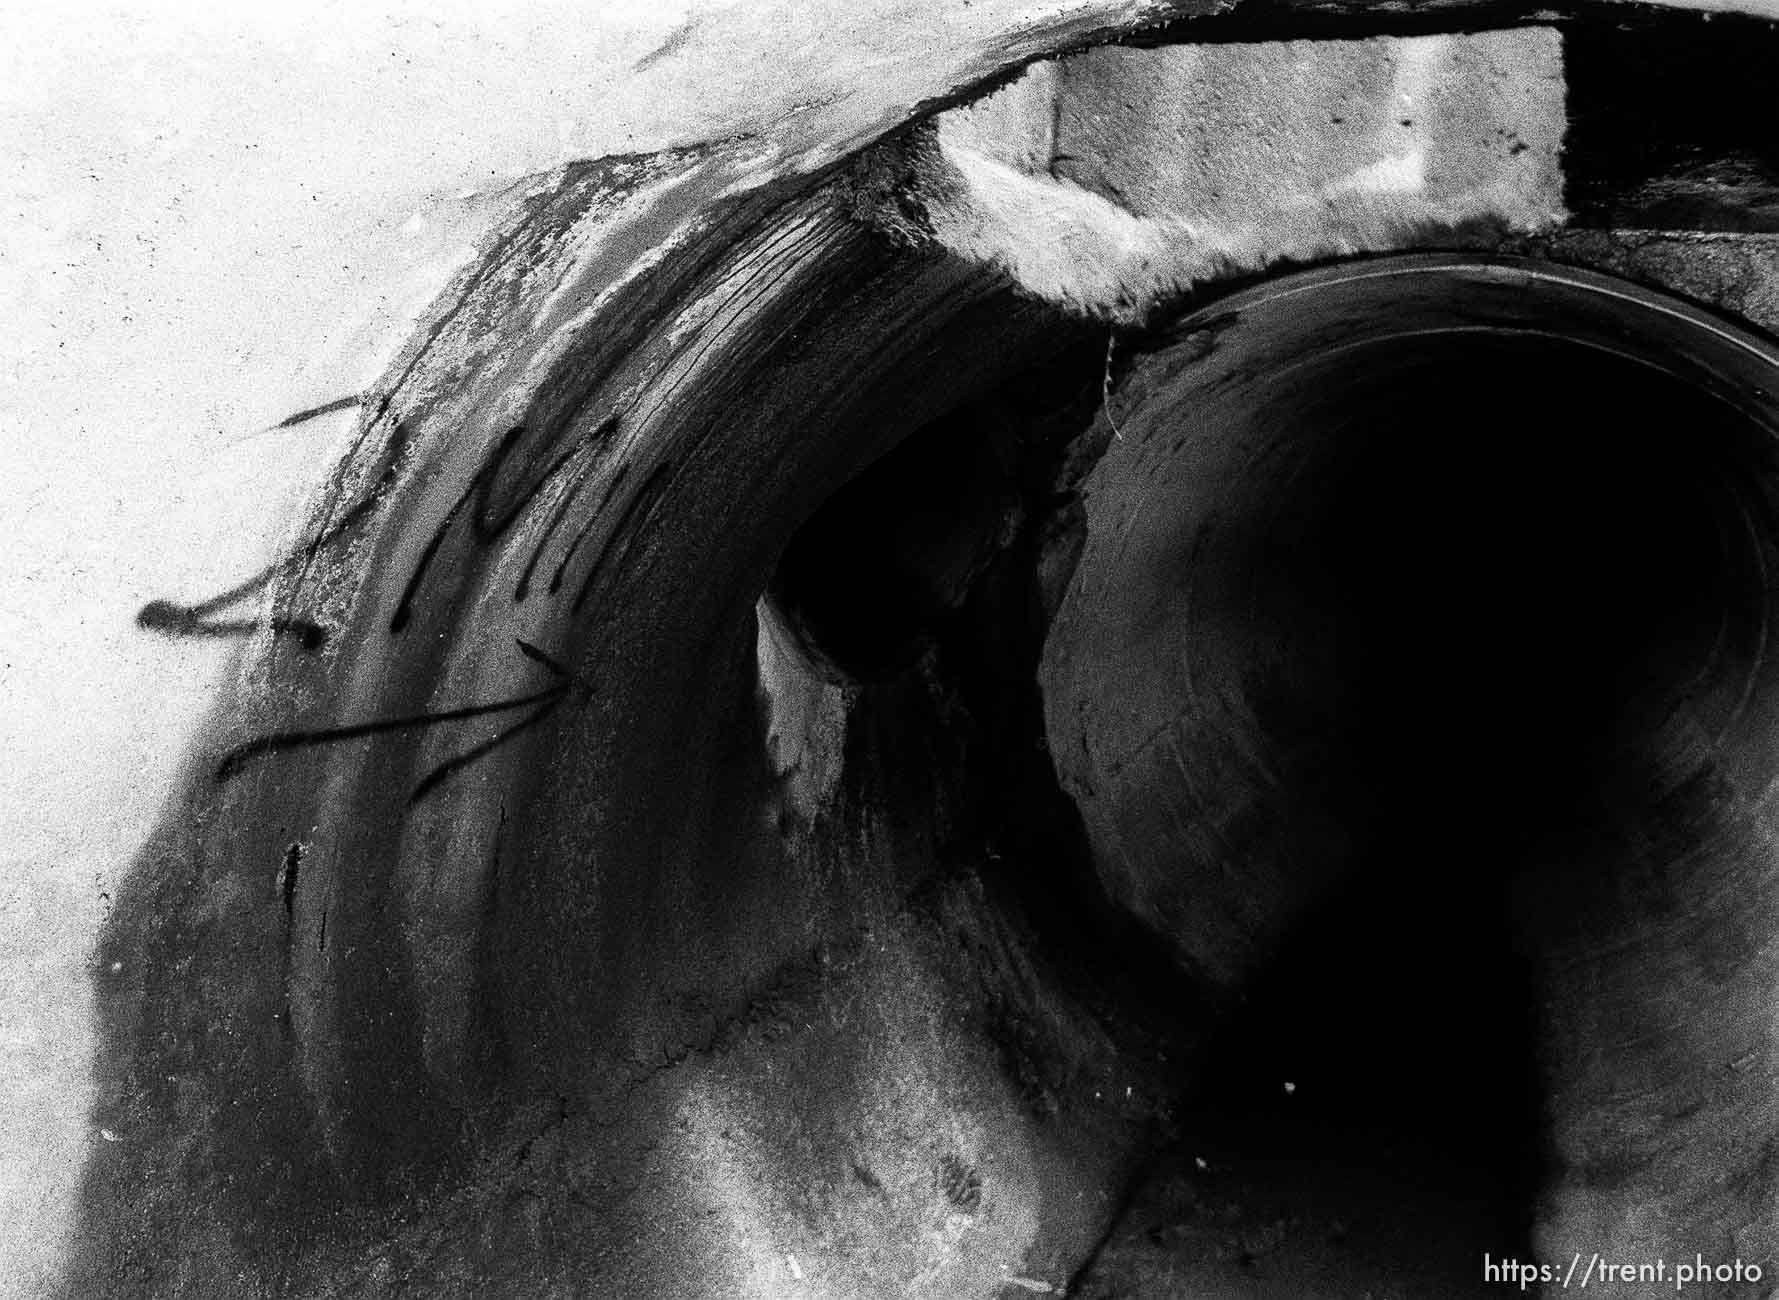 in sewer pipe.